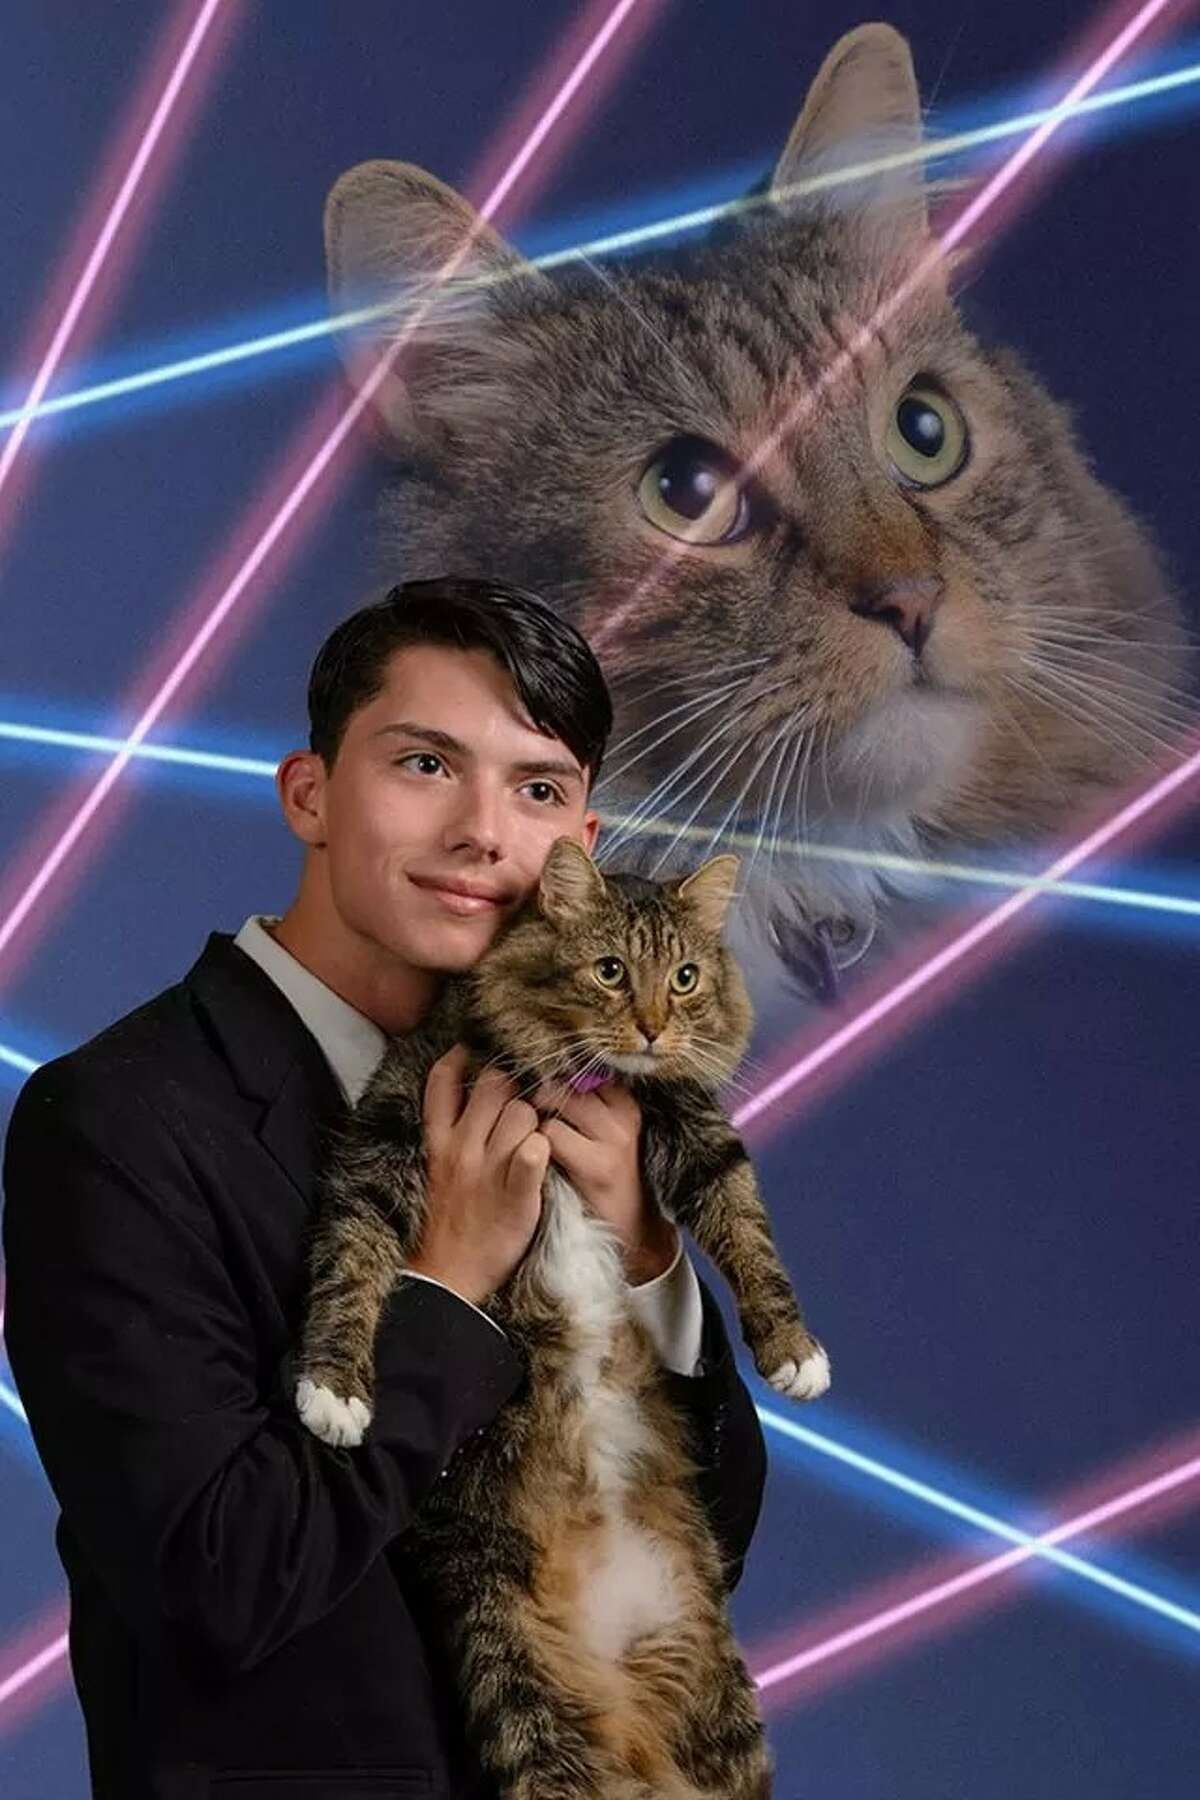 In Fall 2014, Draven Rodriguez petitioned to use this image of him with his cat, Mr. Bigglesworth, as his senior portrait in his Schenectady High School yearbook. It didn't take long for the image to go viral. (Provided)